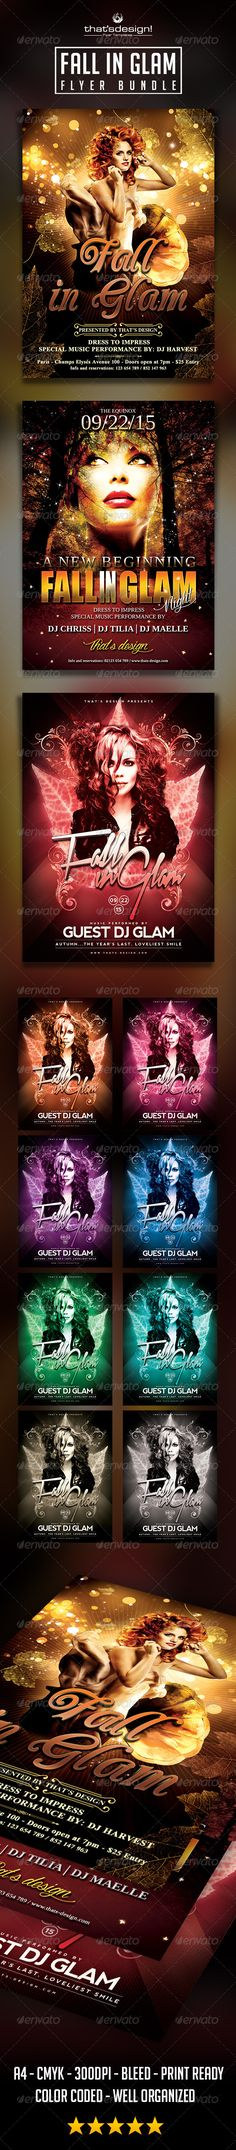 Fall in Glam Flyer Bundle Template PSD   Buy and Download: http://graphicriver.net/item/fall-in-glam-flyer-bundle/8695557?WT.ac=category_thumb&WT.z_author=lou606&ref=ksioks